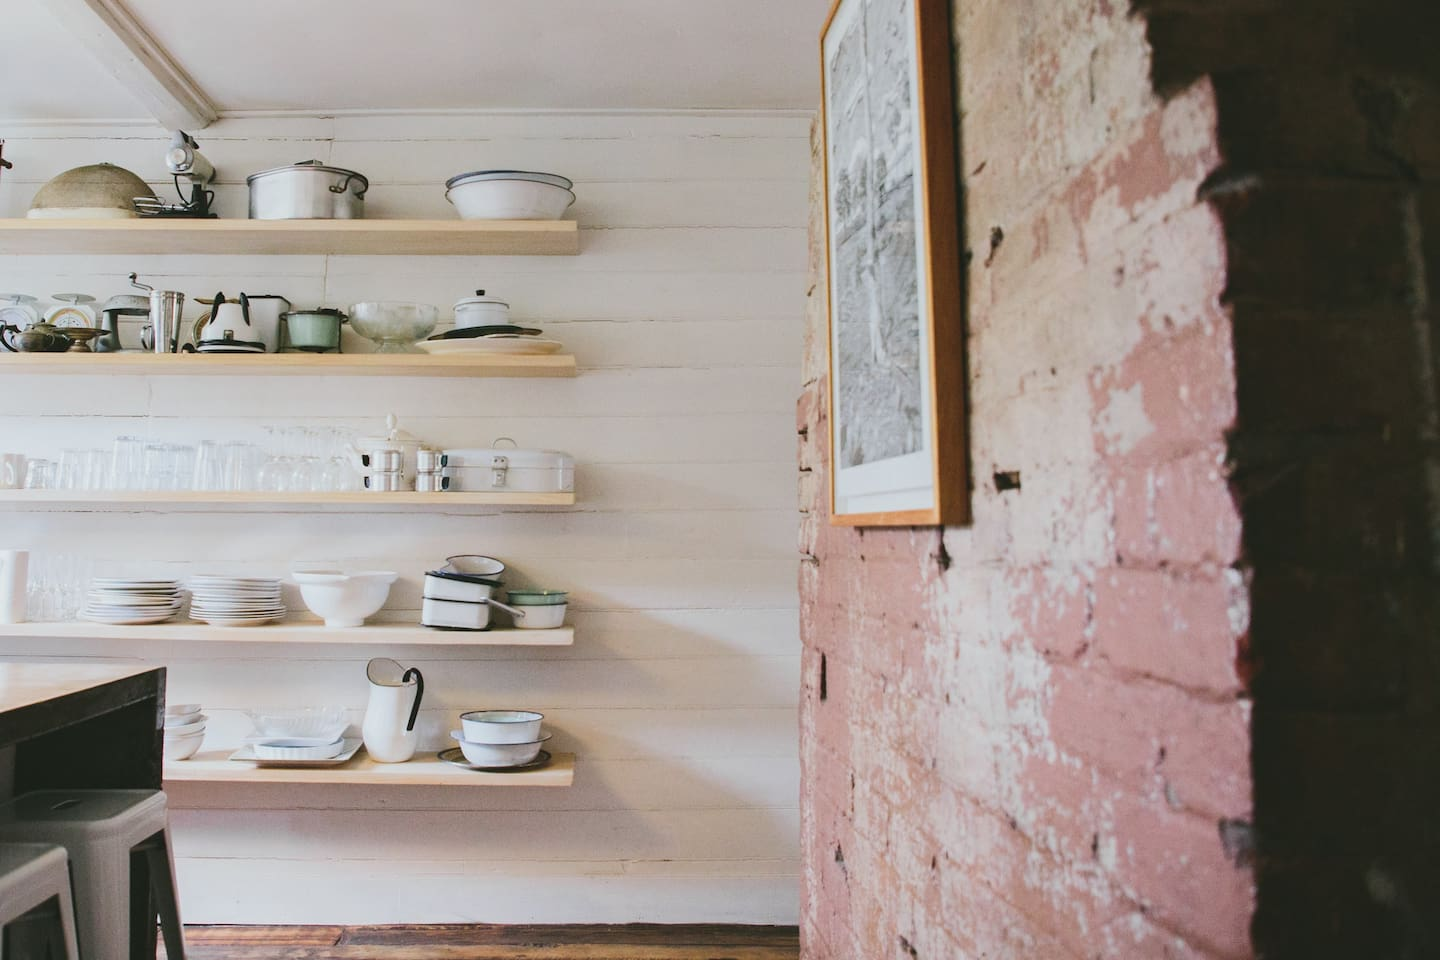 Everything you need in the kitchen, plus a large personal collection of vintage enamelware